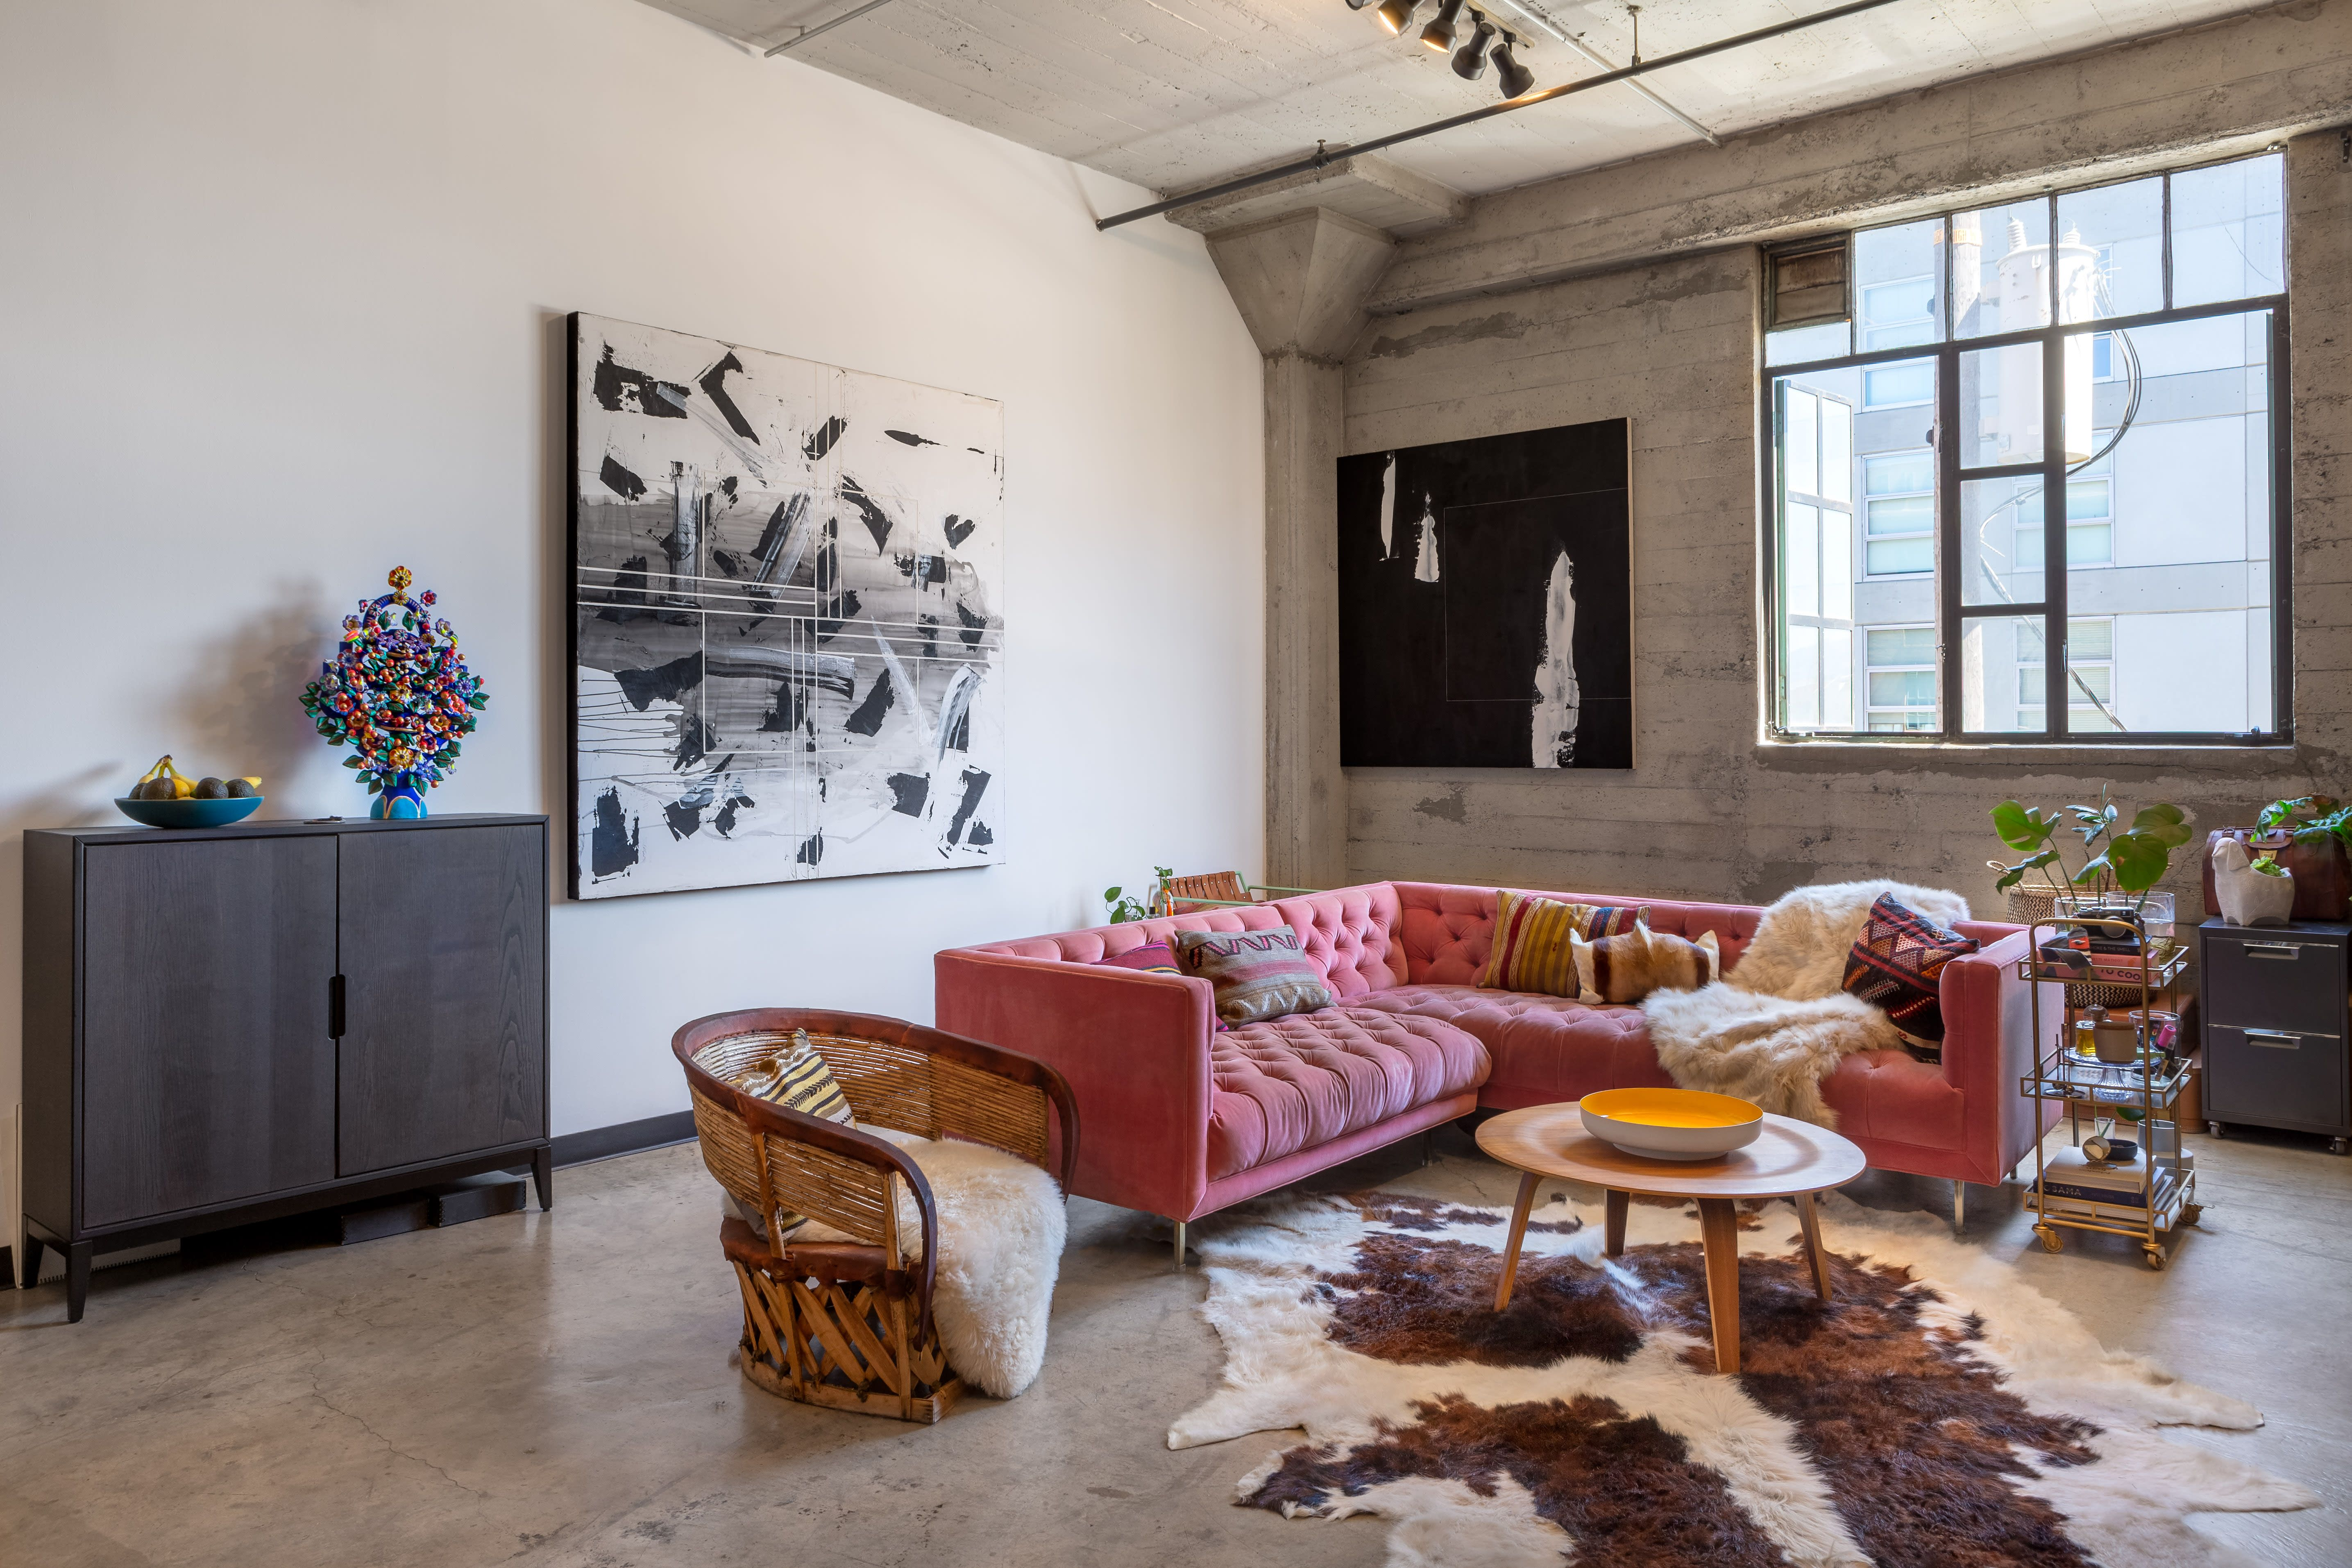 An Incredible Remodel Is Inspired By Mexico Morocco And Maximalism Live Work Lofts Remodel Living Room Furniture